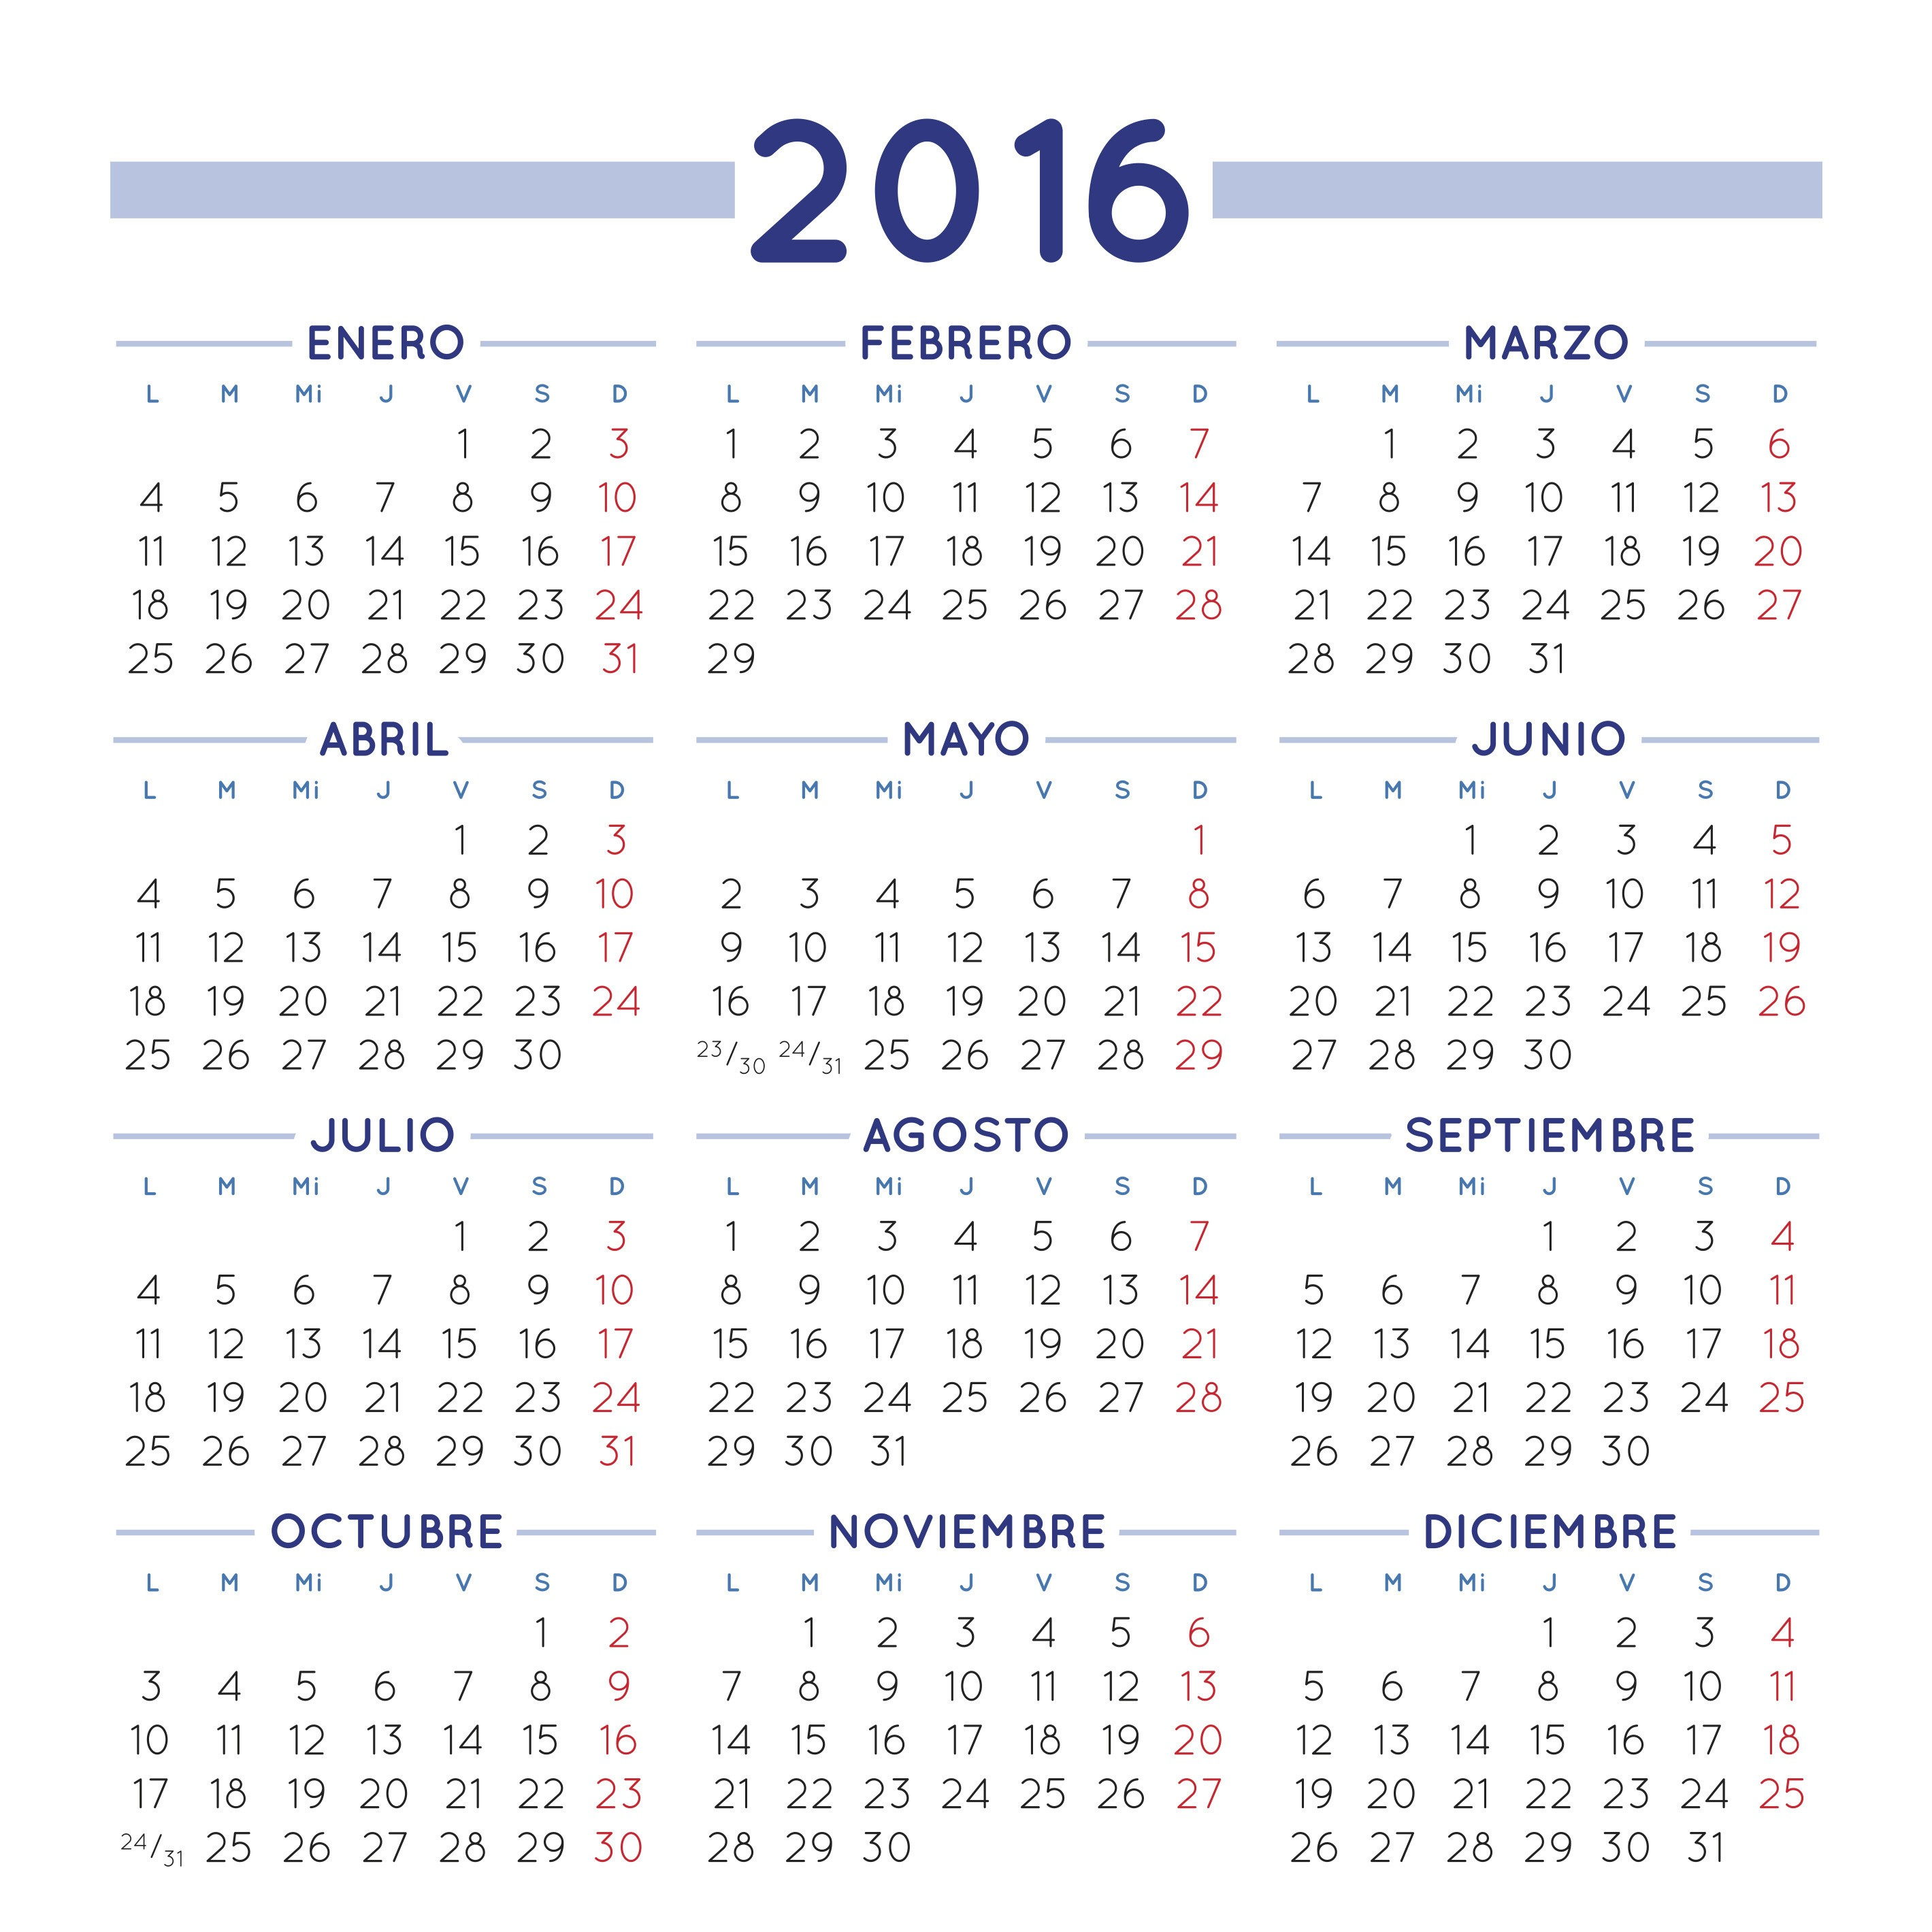 Un aniversario m s y van 8 calendario gratuito de 2016 for Calendario lunar 2016 colombia